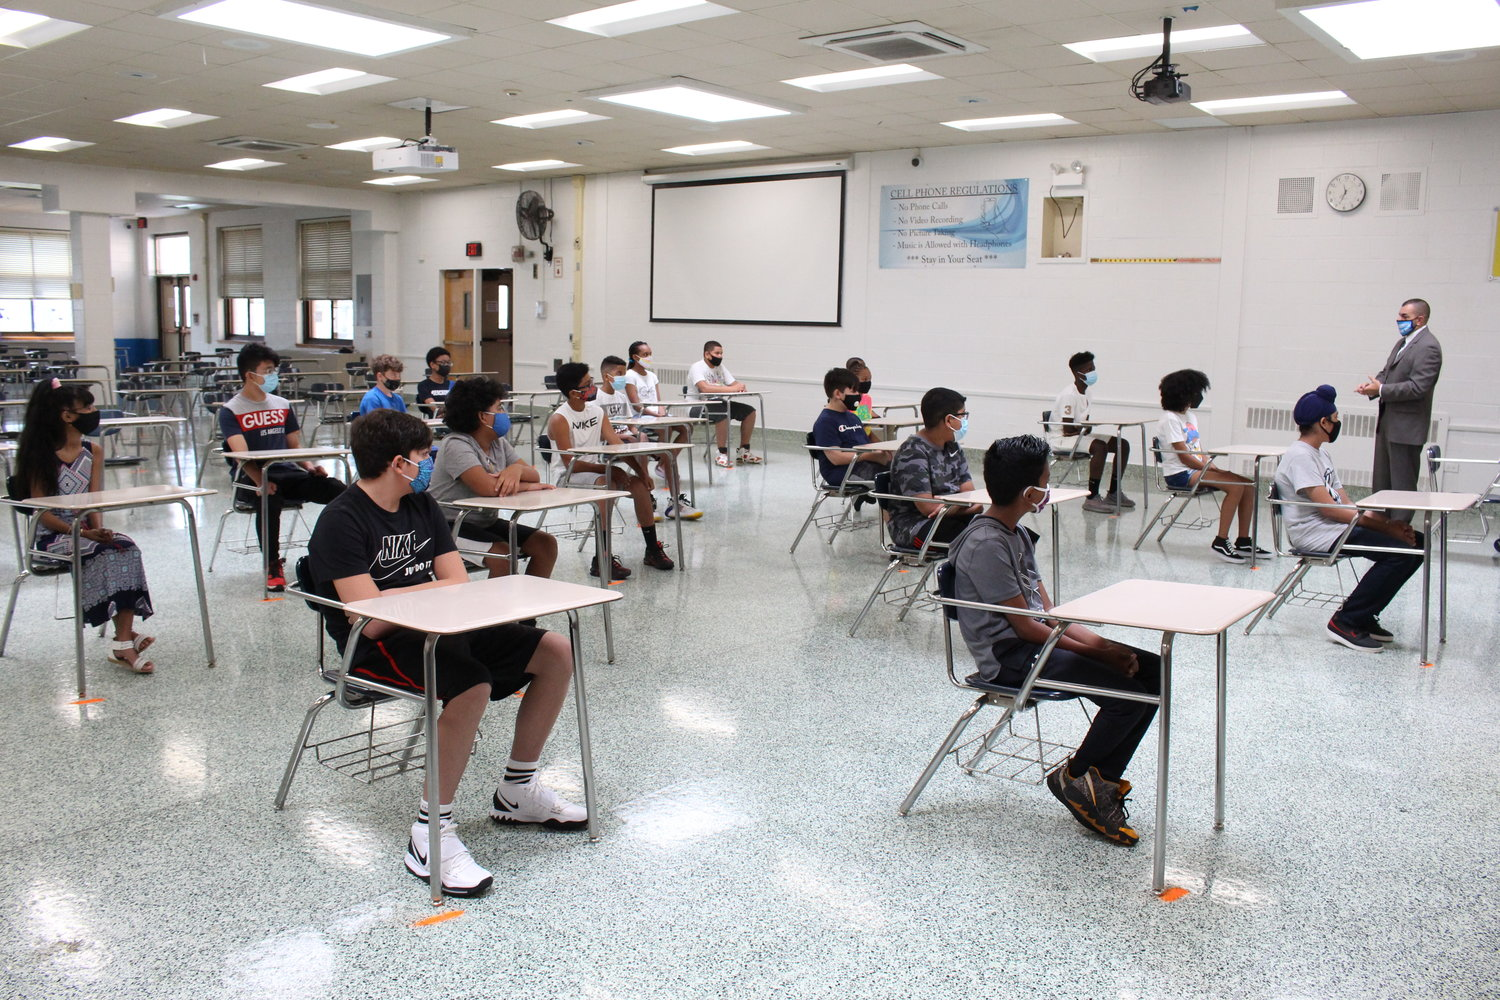 At orientation late last month, Memorial Junior High School seventh-graders had their first taste of in-person schooling since the coronavirus forced the closure of all schools in mid-March.